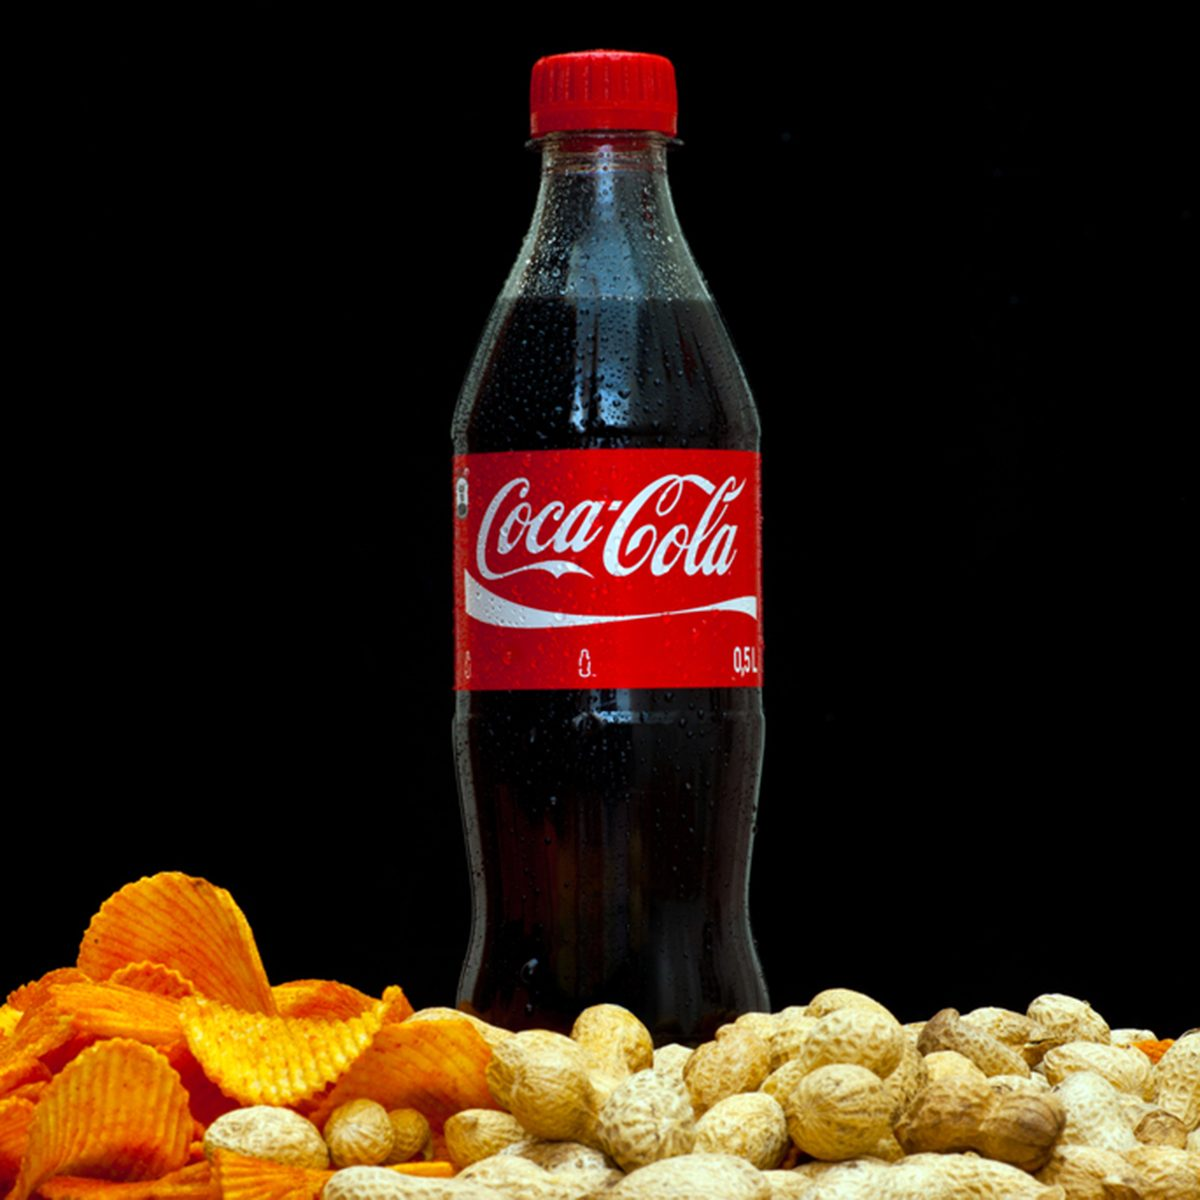 plastic bottle of soft drink coca-cola by coca-cola company on black background